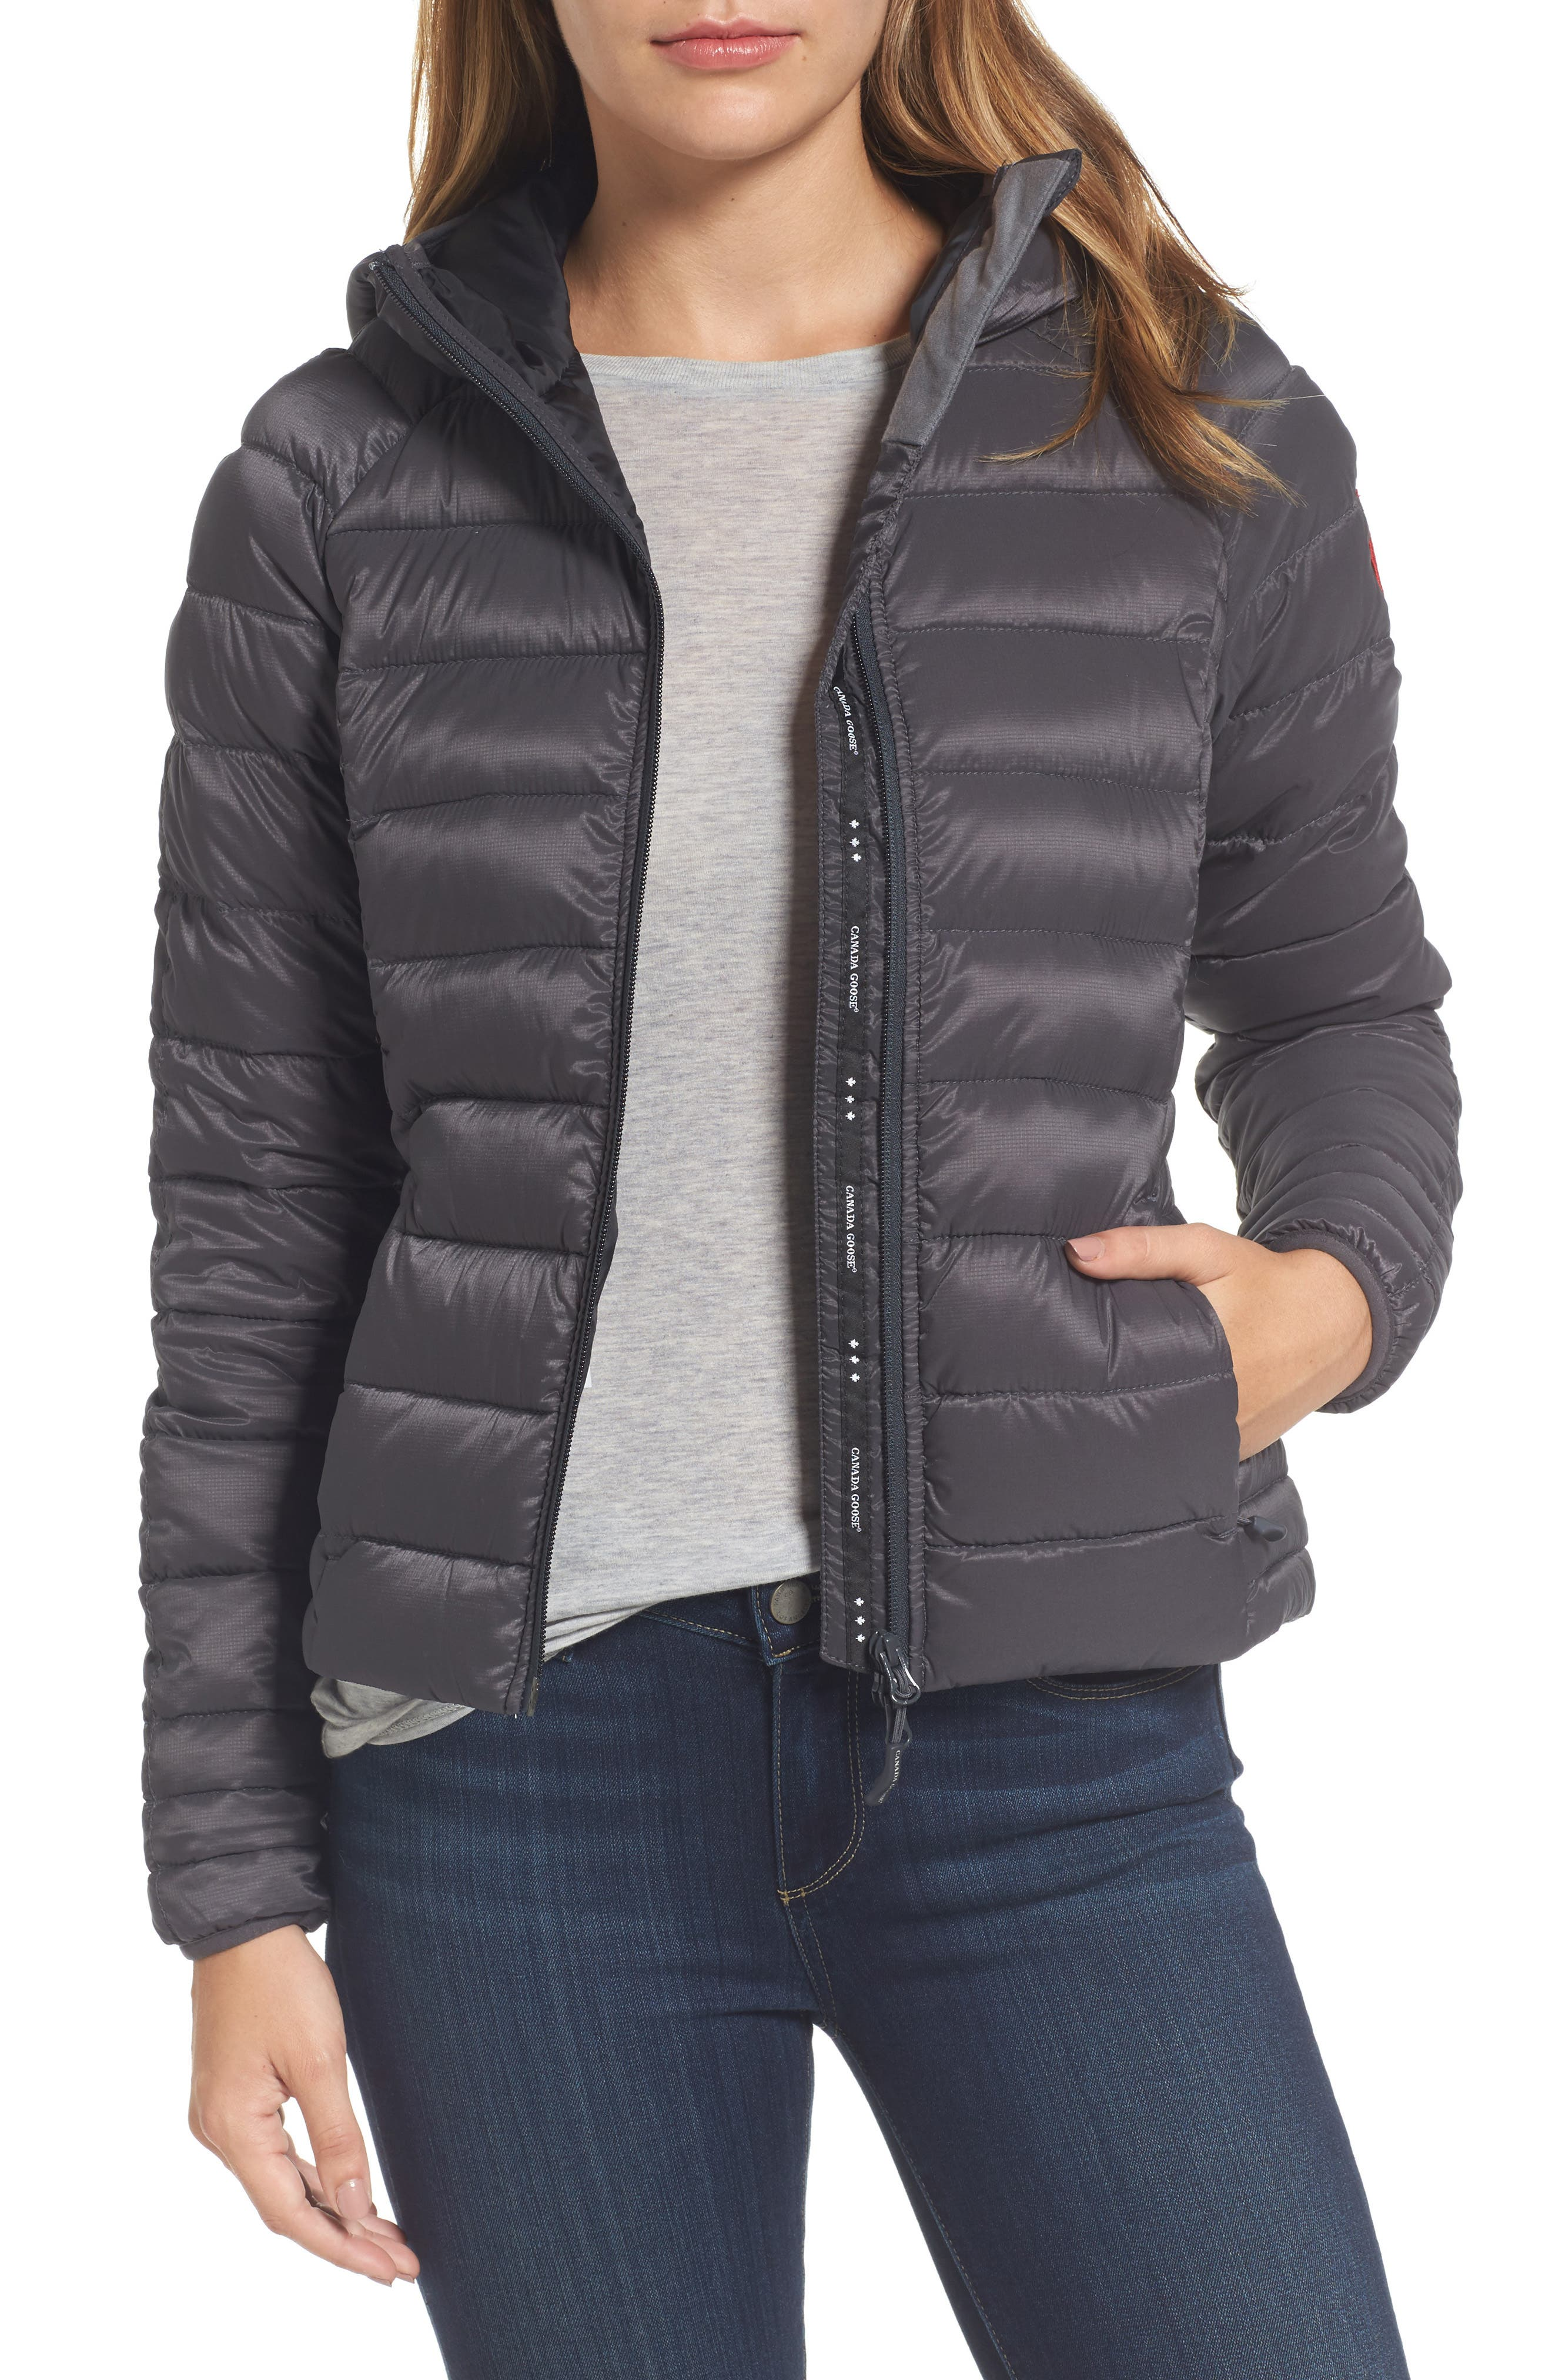 'Brookvale' Packable Hooded Quilted Down Jacket,                             Main thumbnail 1, color,                             Graphite/ Black